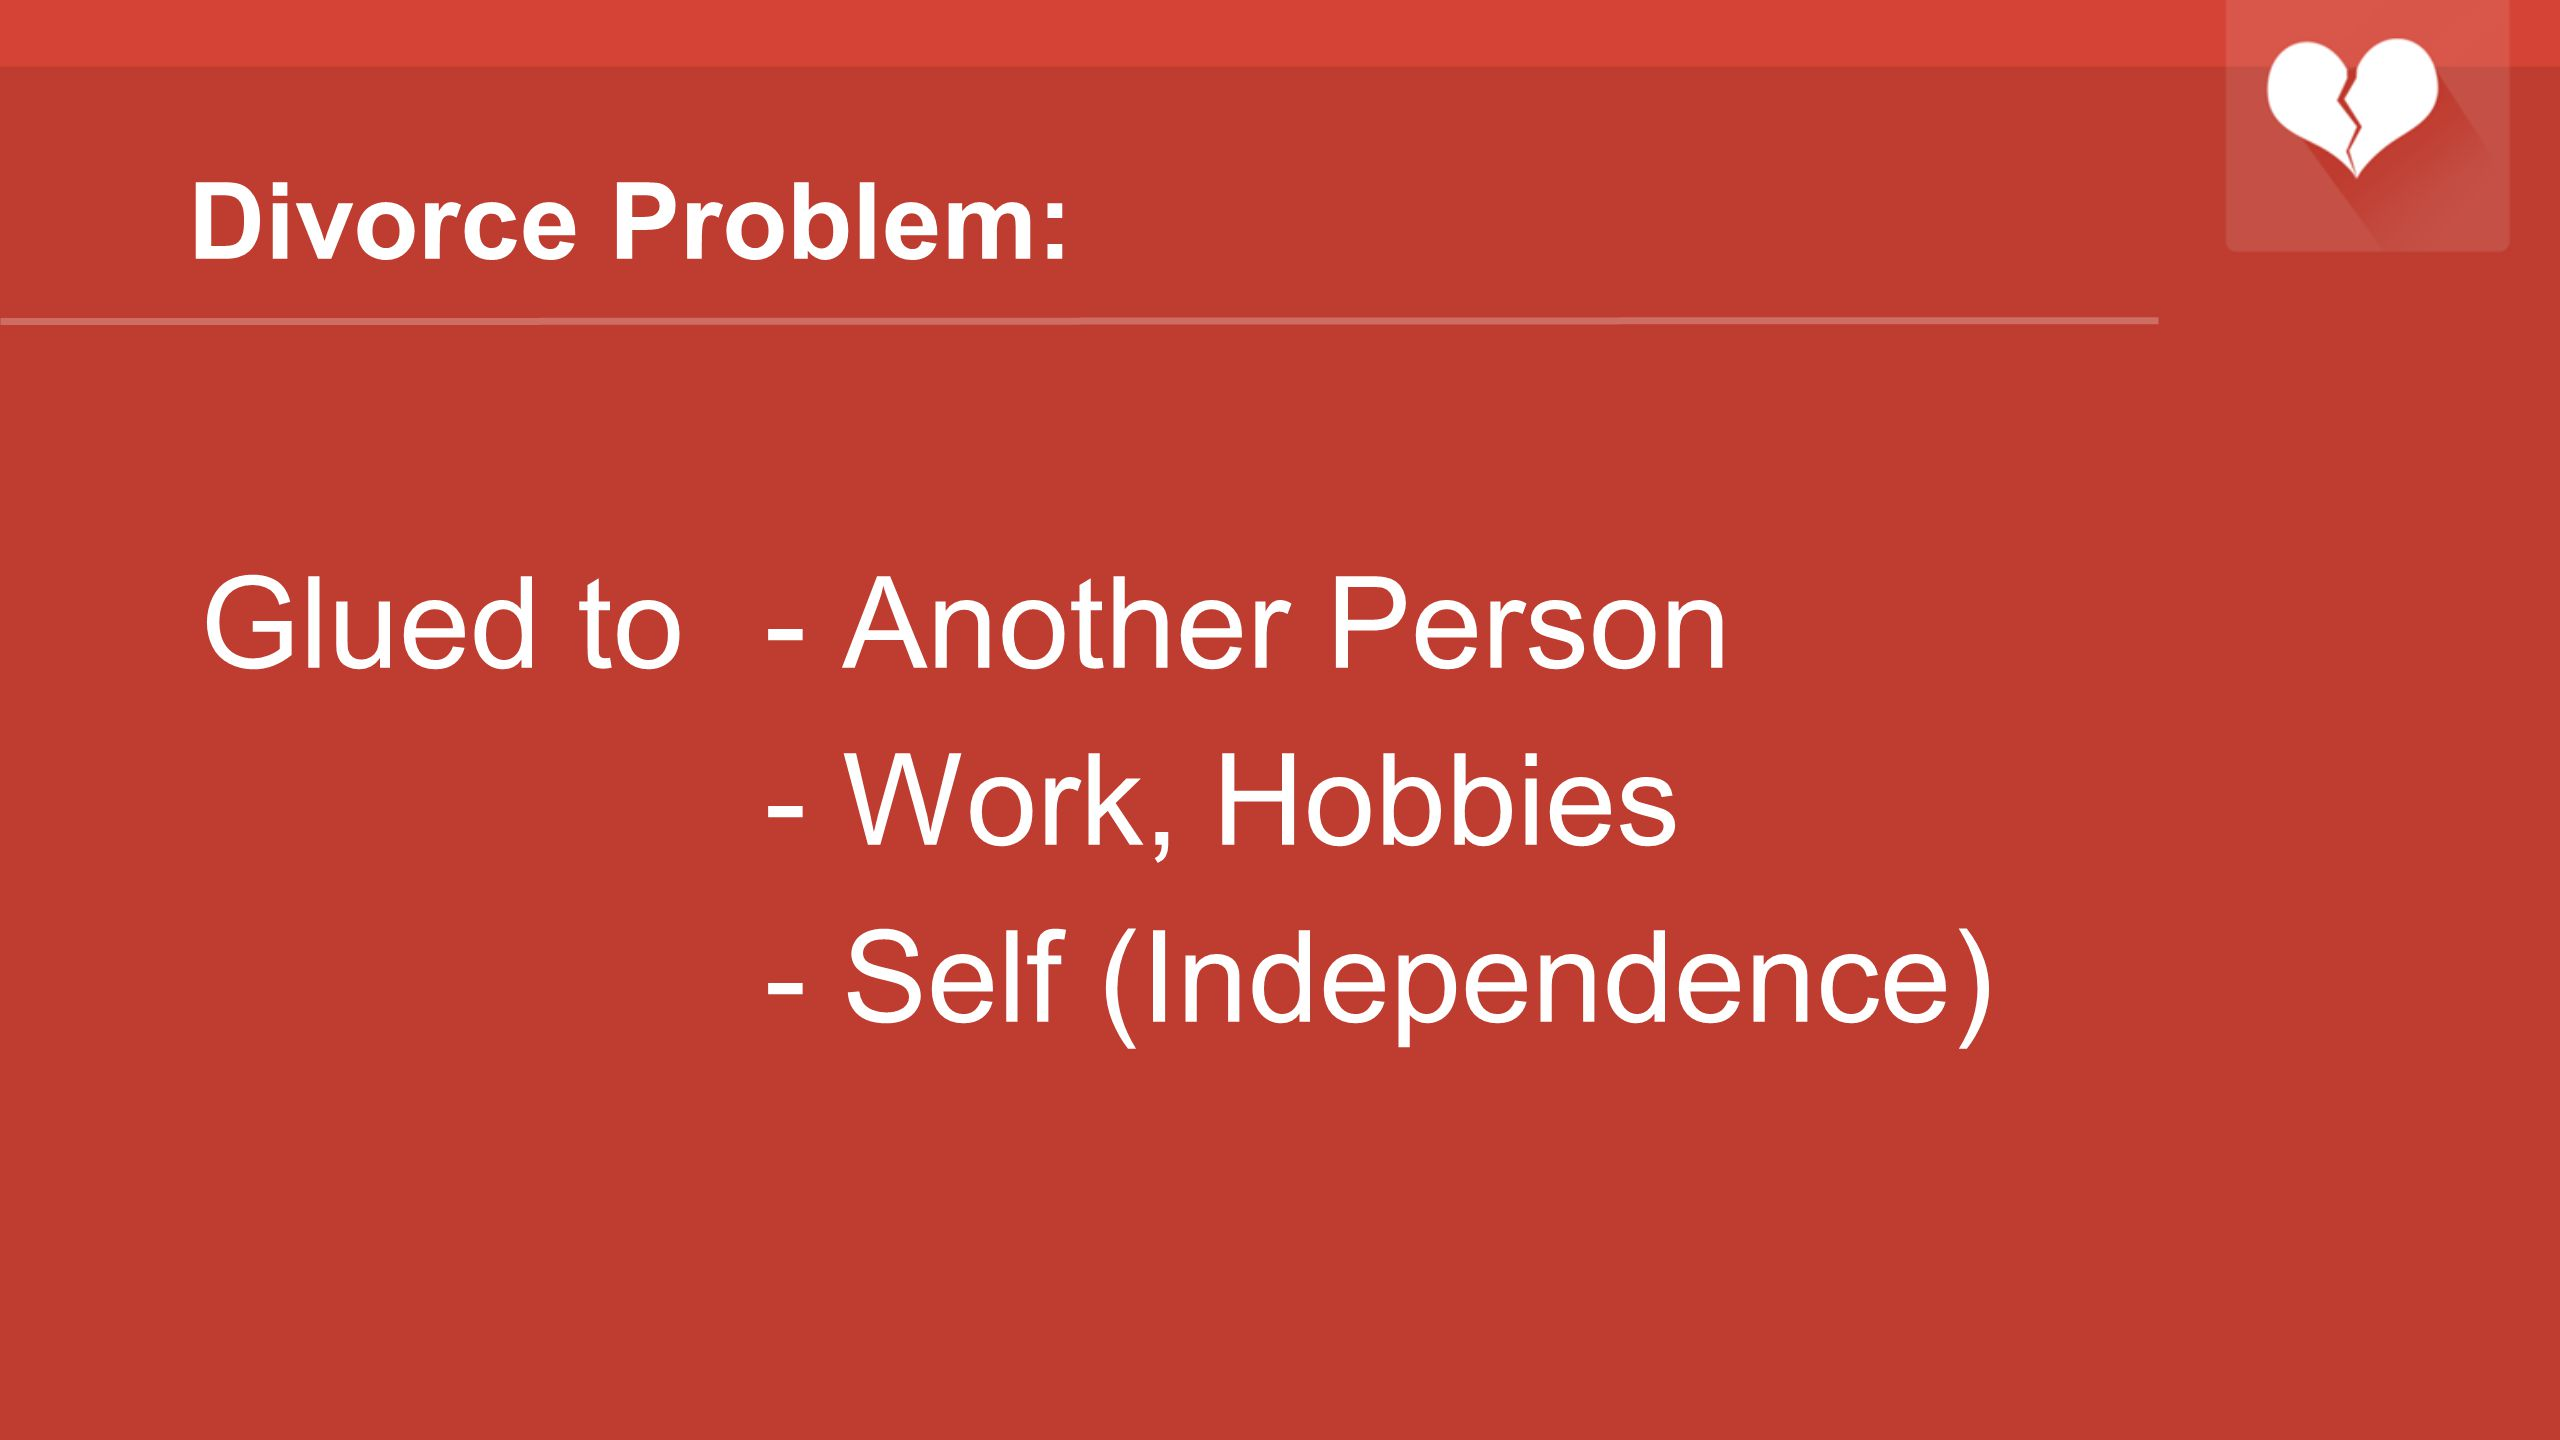 Divorce Problem: Glued to- Another Person - Work, Hobbies - Self (Independence)